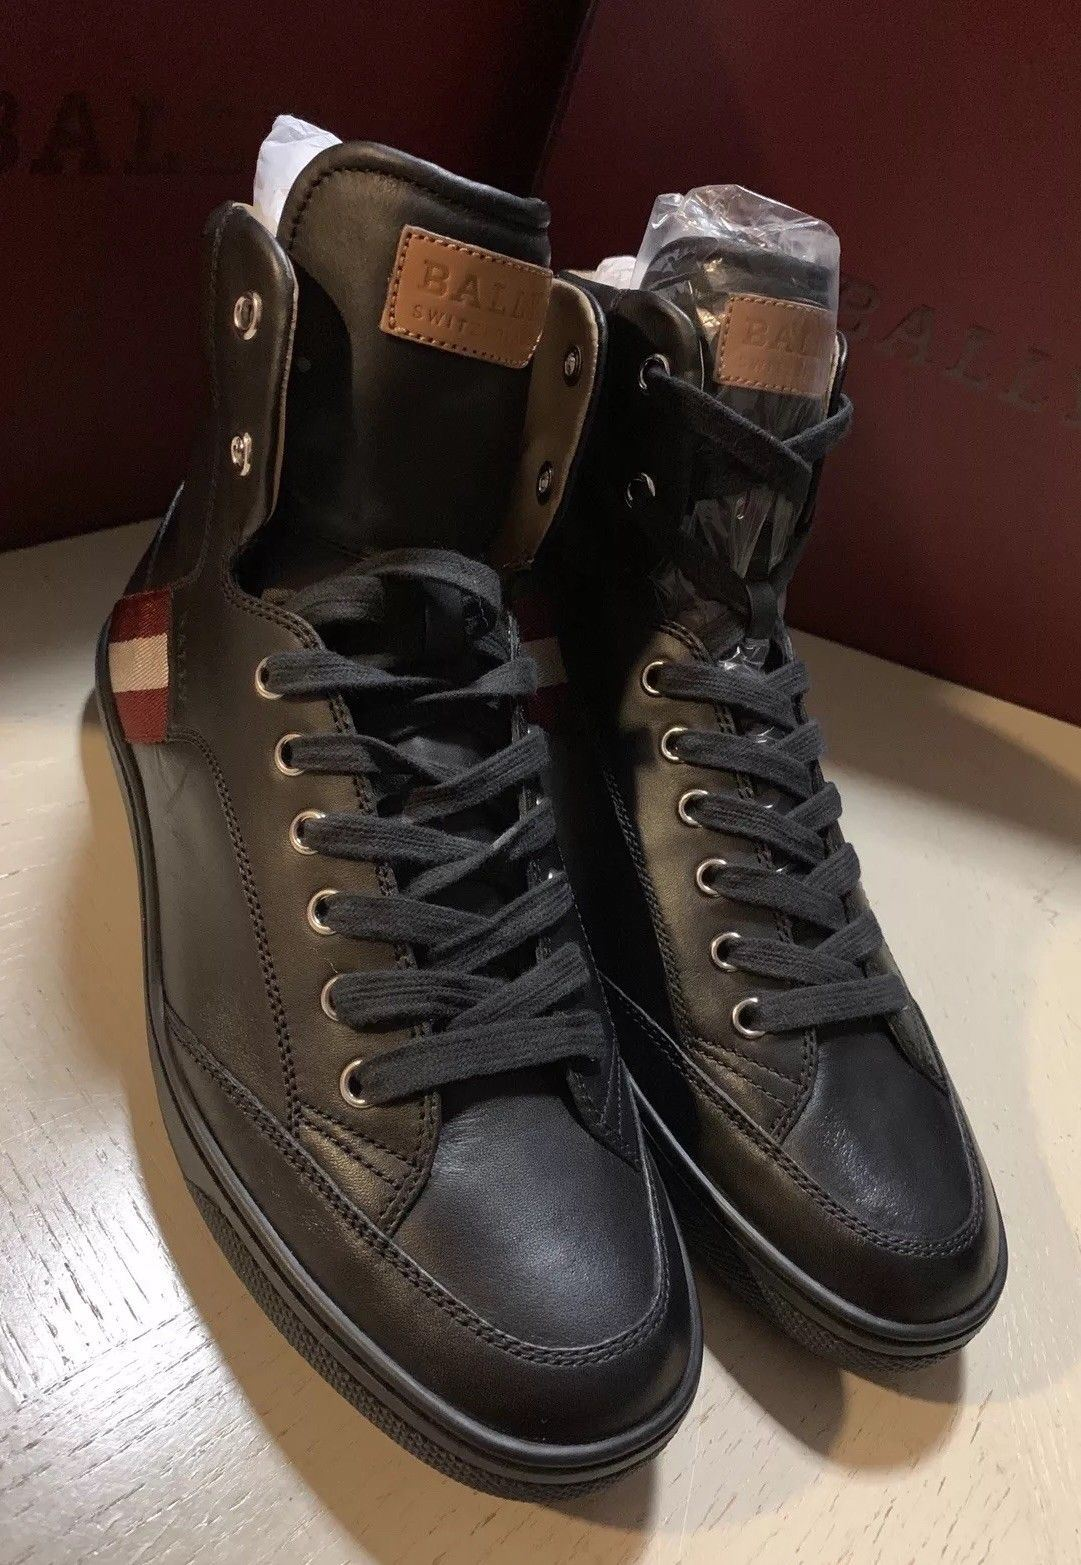 New $650 Bally Men Oldani Leather High-Top Sneakers Black 7 US Italy